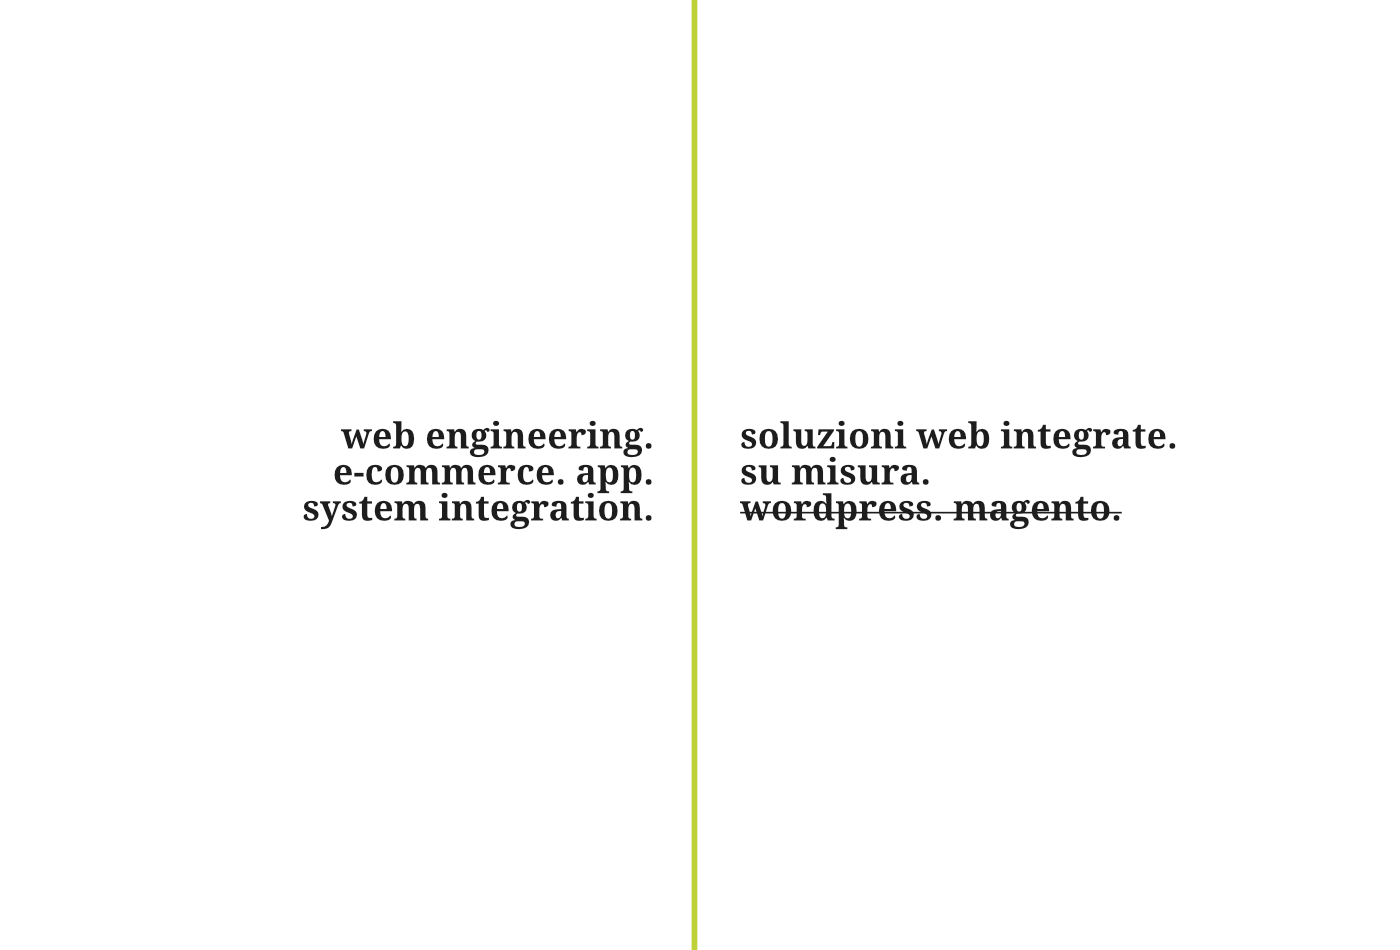 web engineering. 